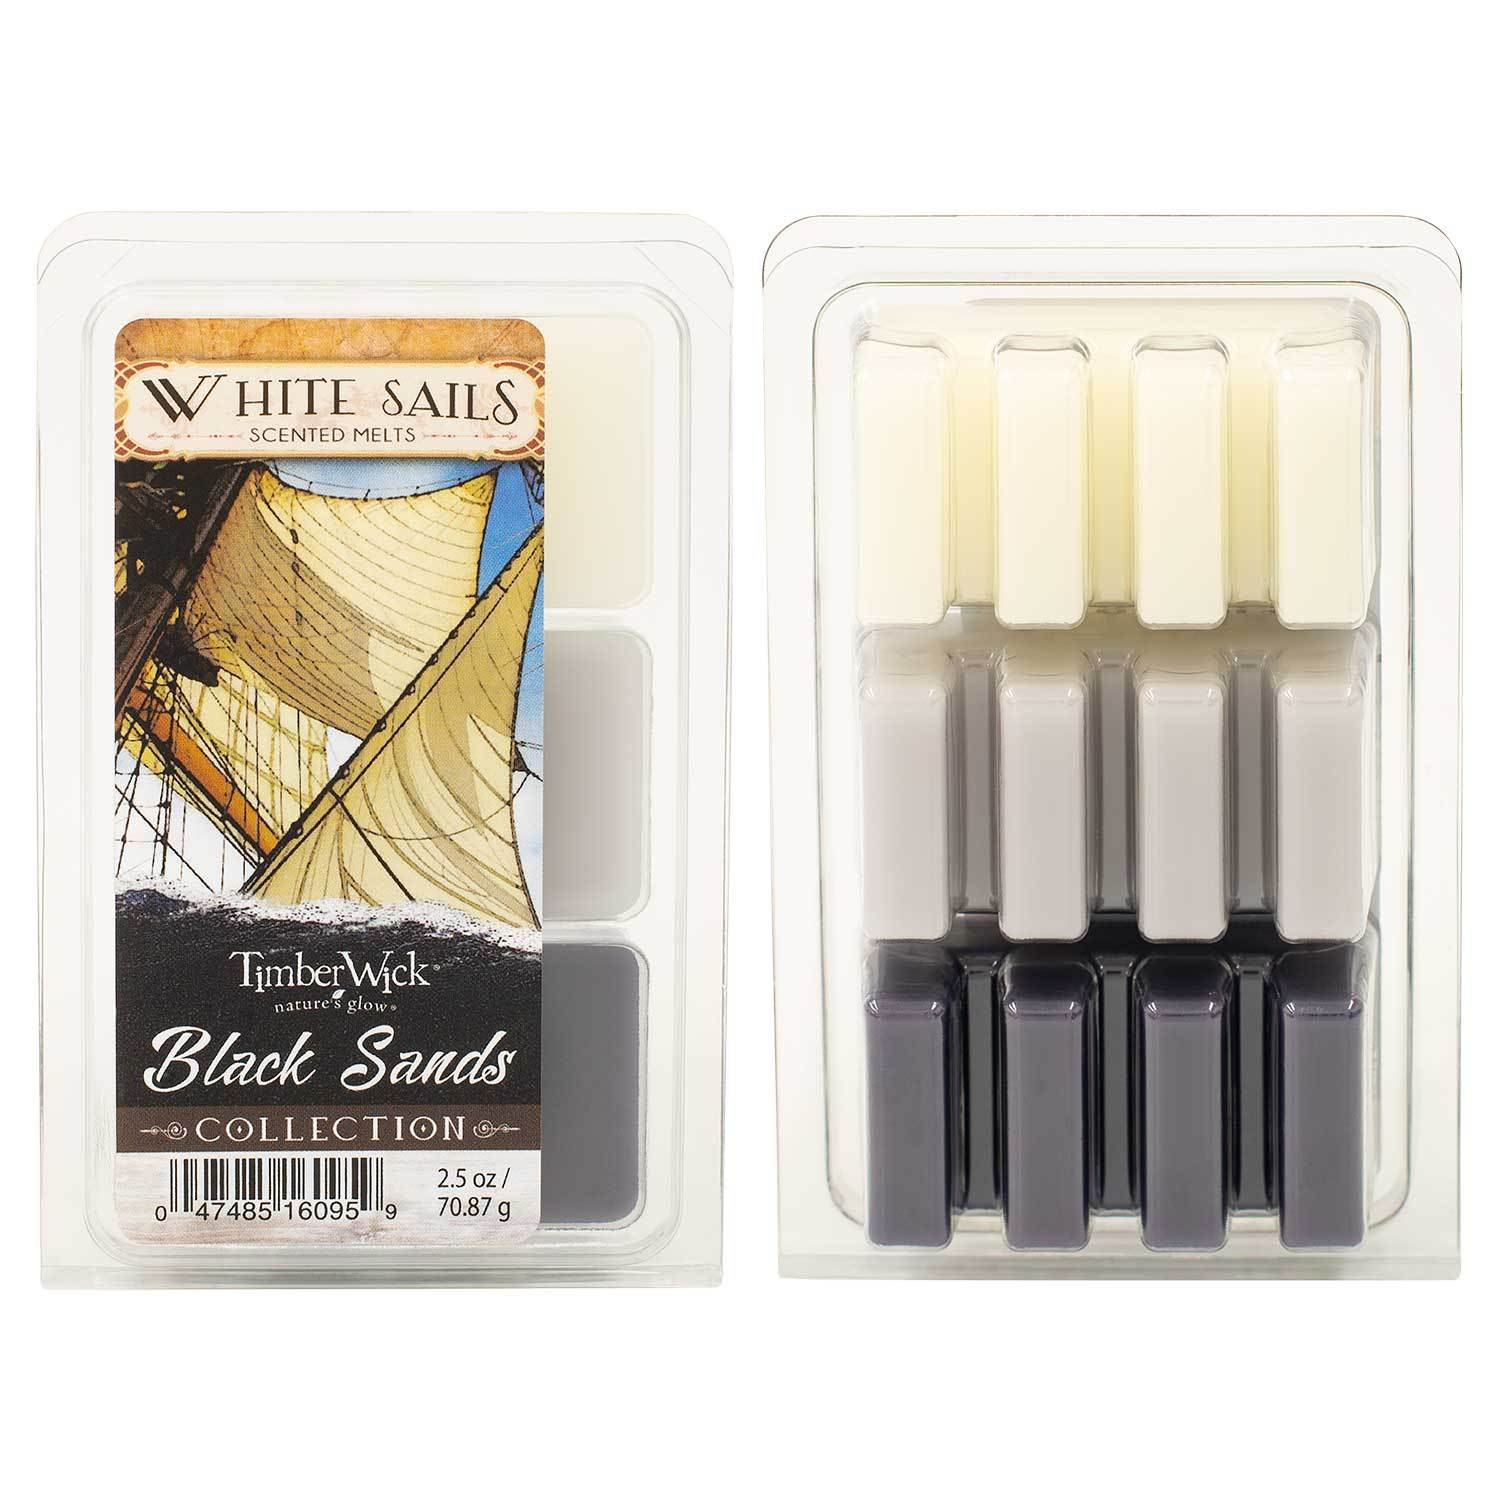 White Sails Scented Wax Melts